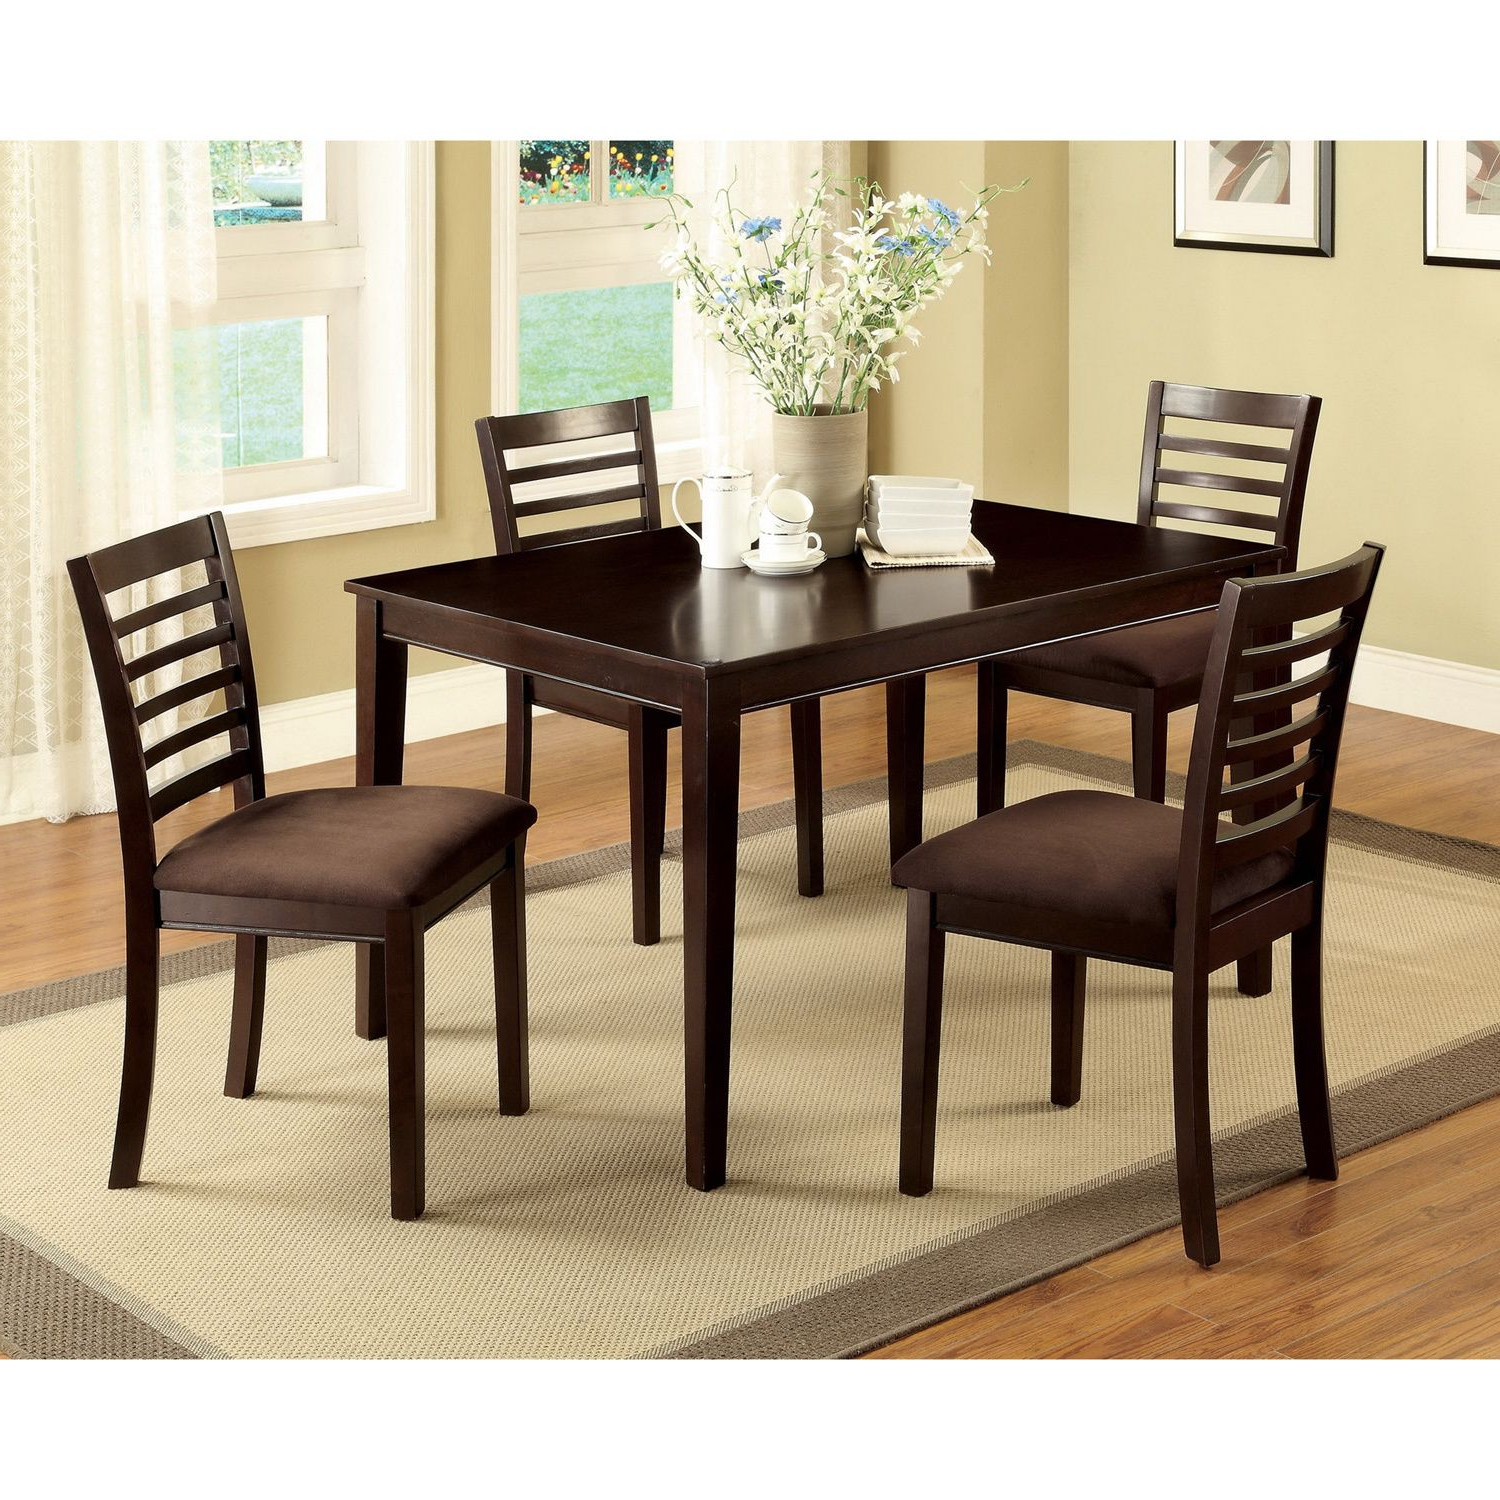 Most Recent Atwood Transitional Square Dining Tables Pertaining To The Eazton 5 Pc Dining Set Is Perfect For Compact Kitchen Or (View 18 of 25)